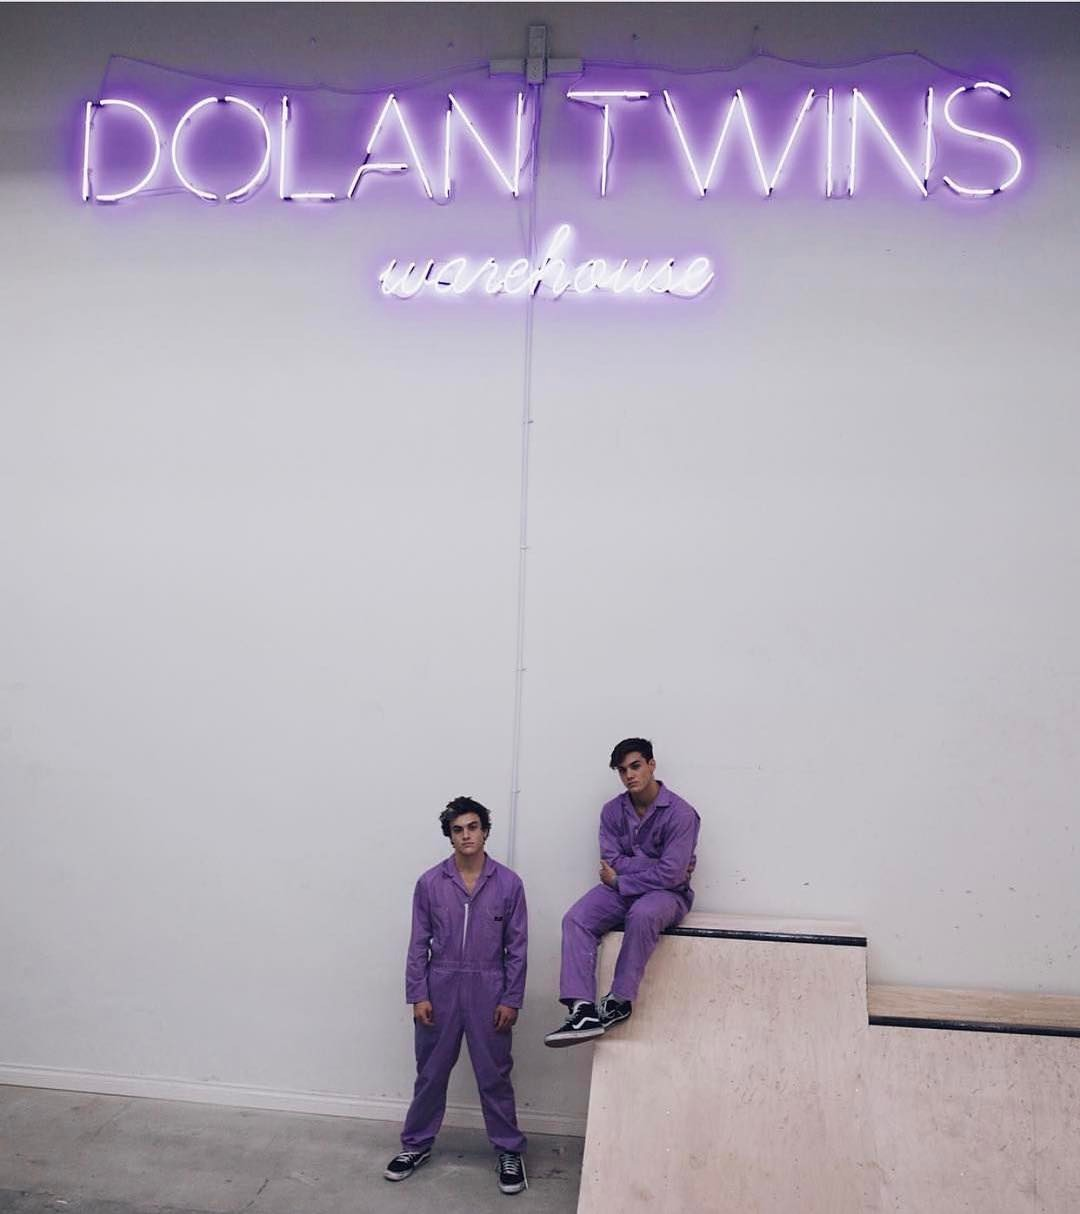 Neon Mfg. and the Dolan Twins